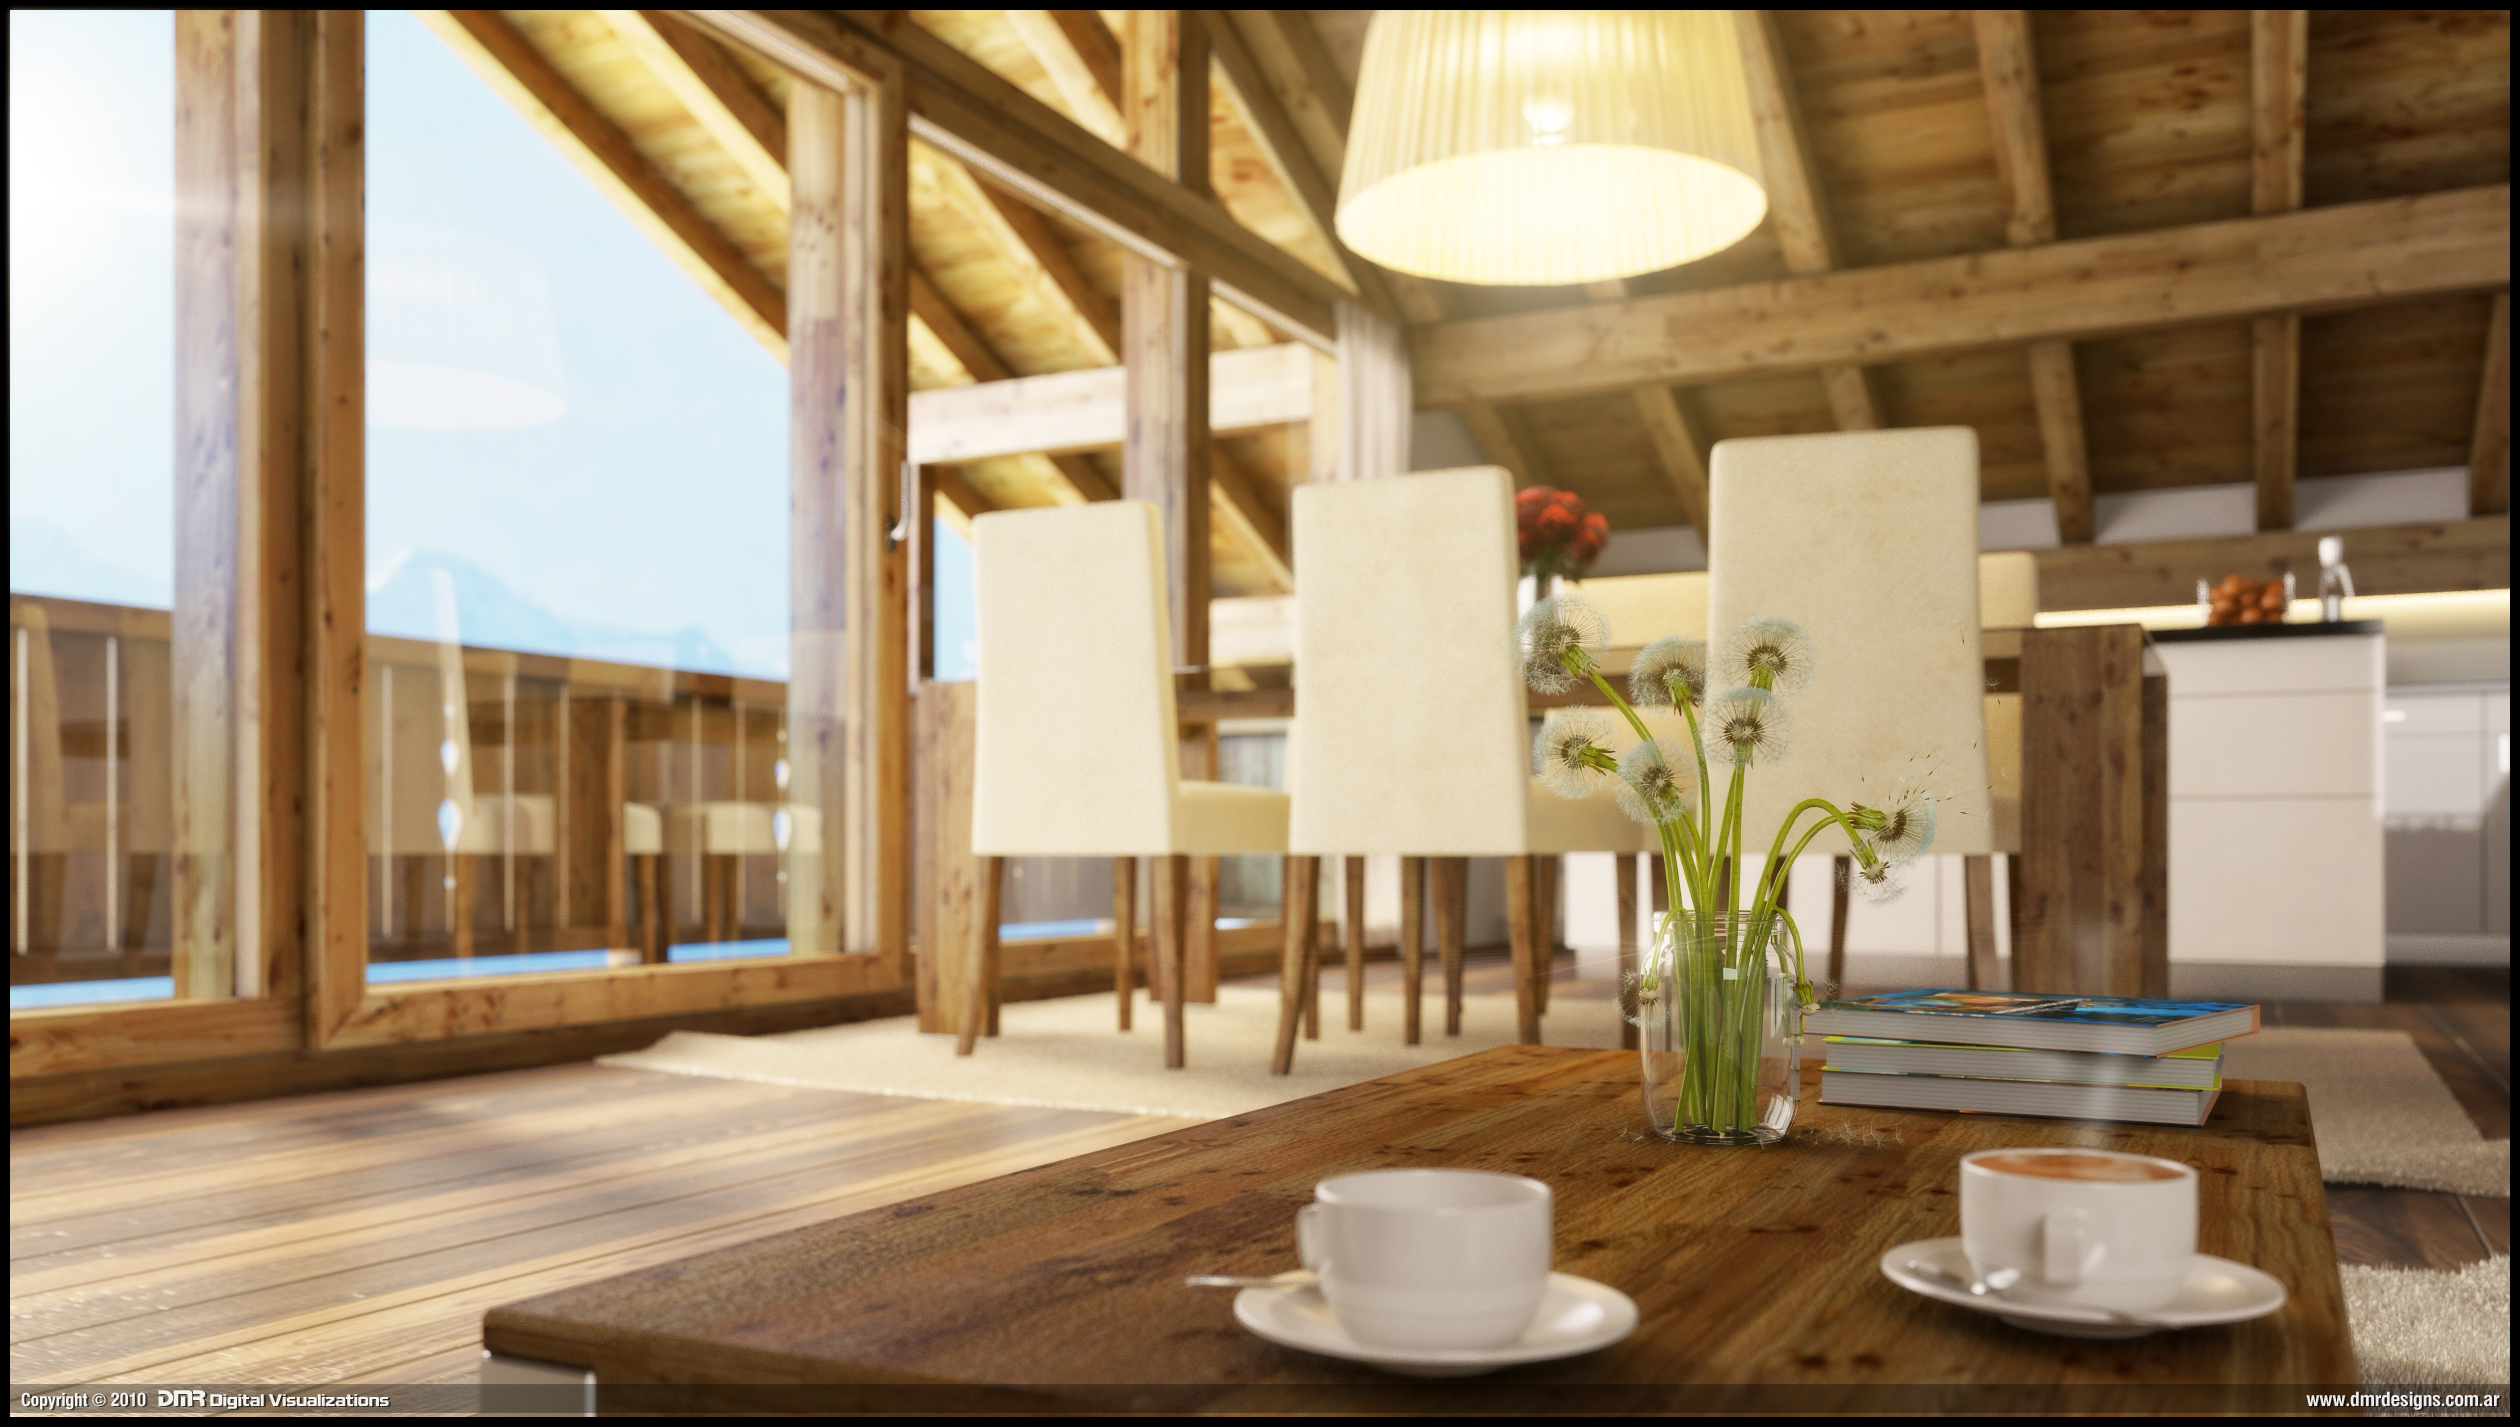 Wood house interior close up by diegoreales on deviantart Wooden interior